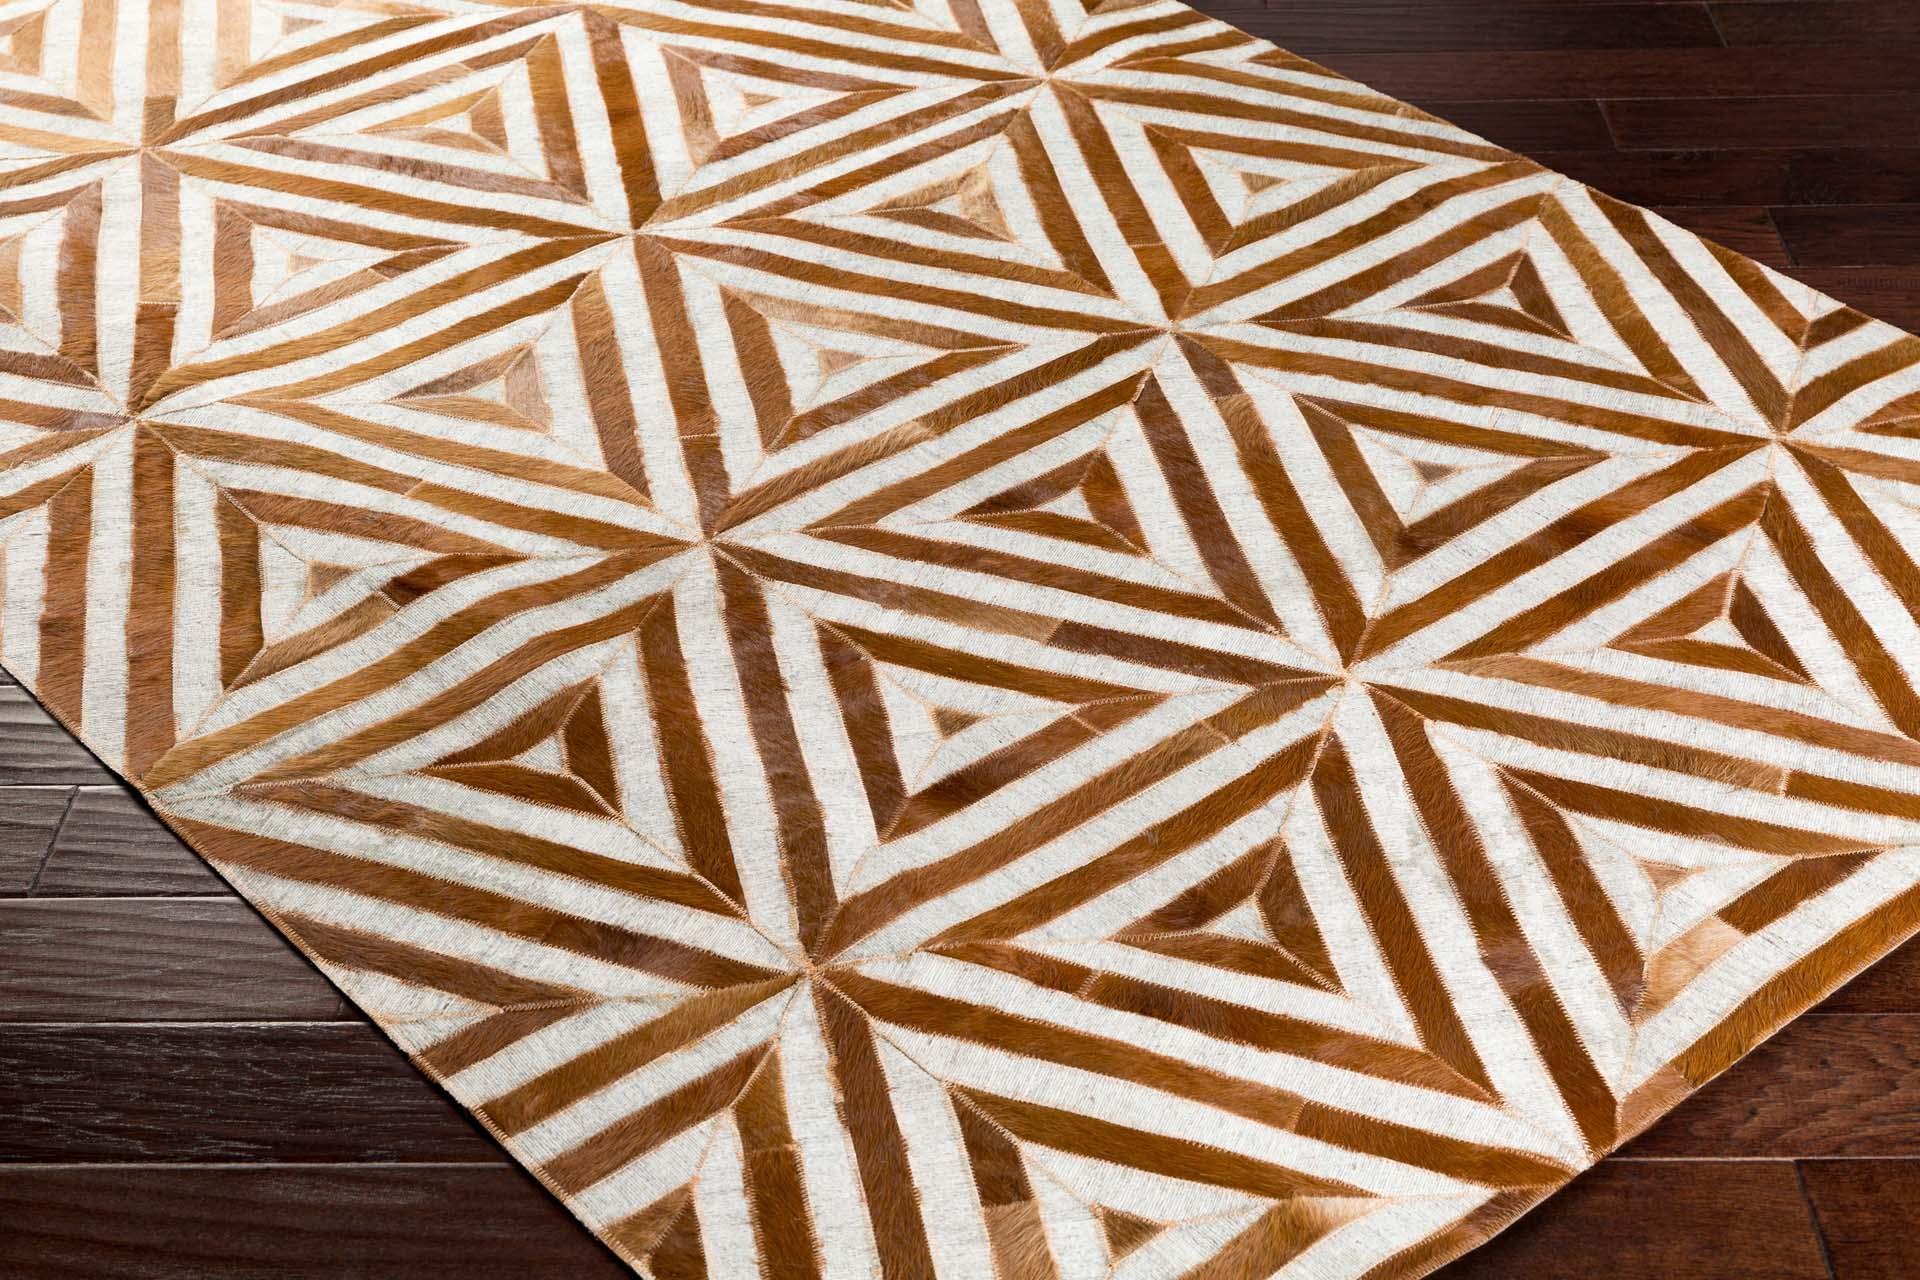 Handcrafted Surya Medora rug featuring hair on hide from India, triangle tribal print pattern.